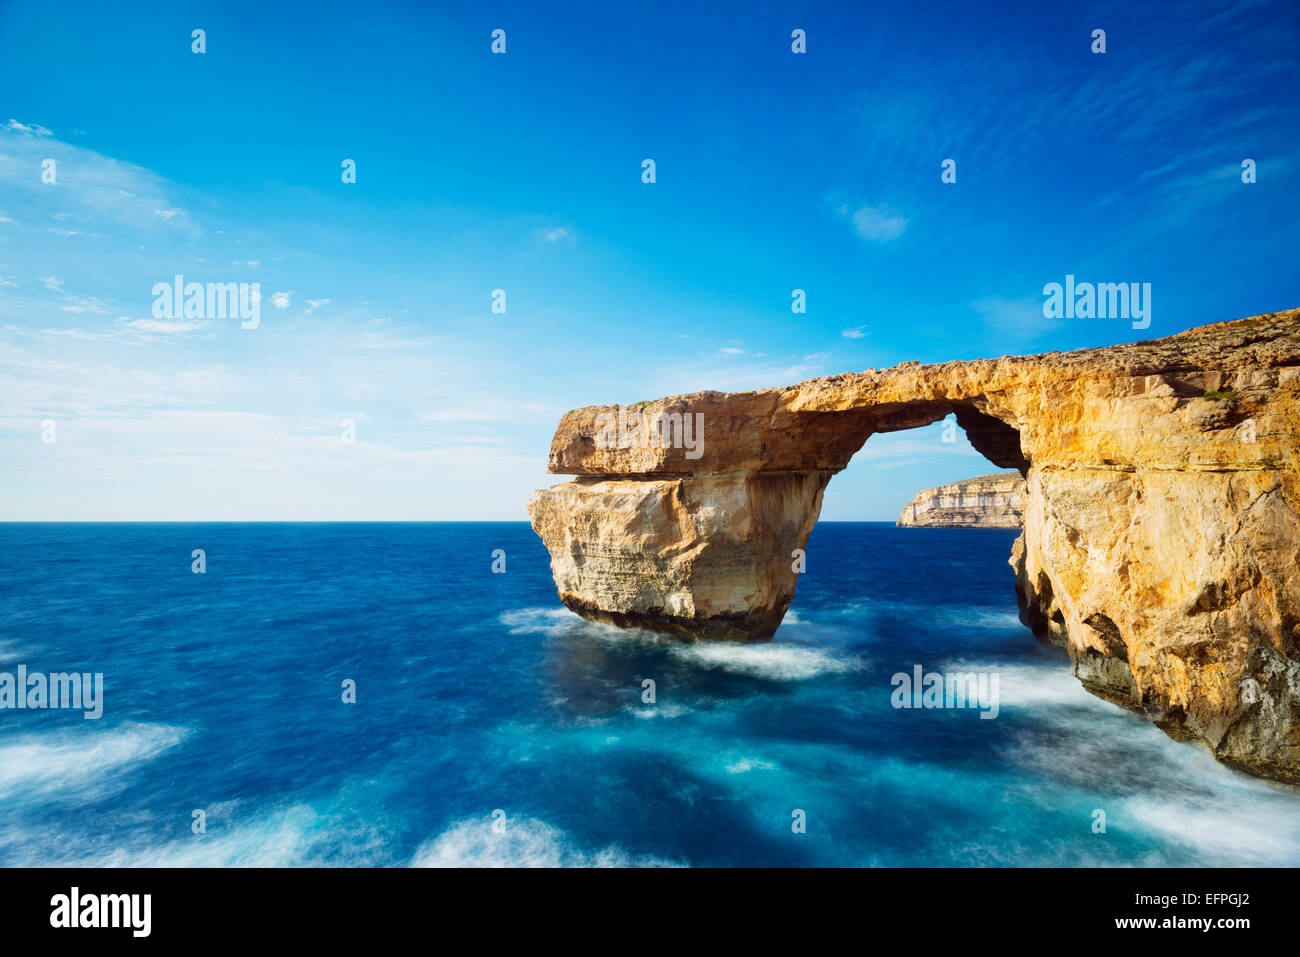 The Azure Window natural arch, Dwerja Bay, Gozo Island, Malta, Mediterranean, Europe - Stock Image